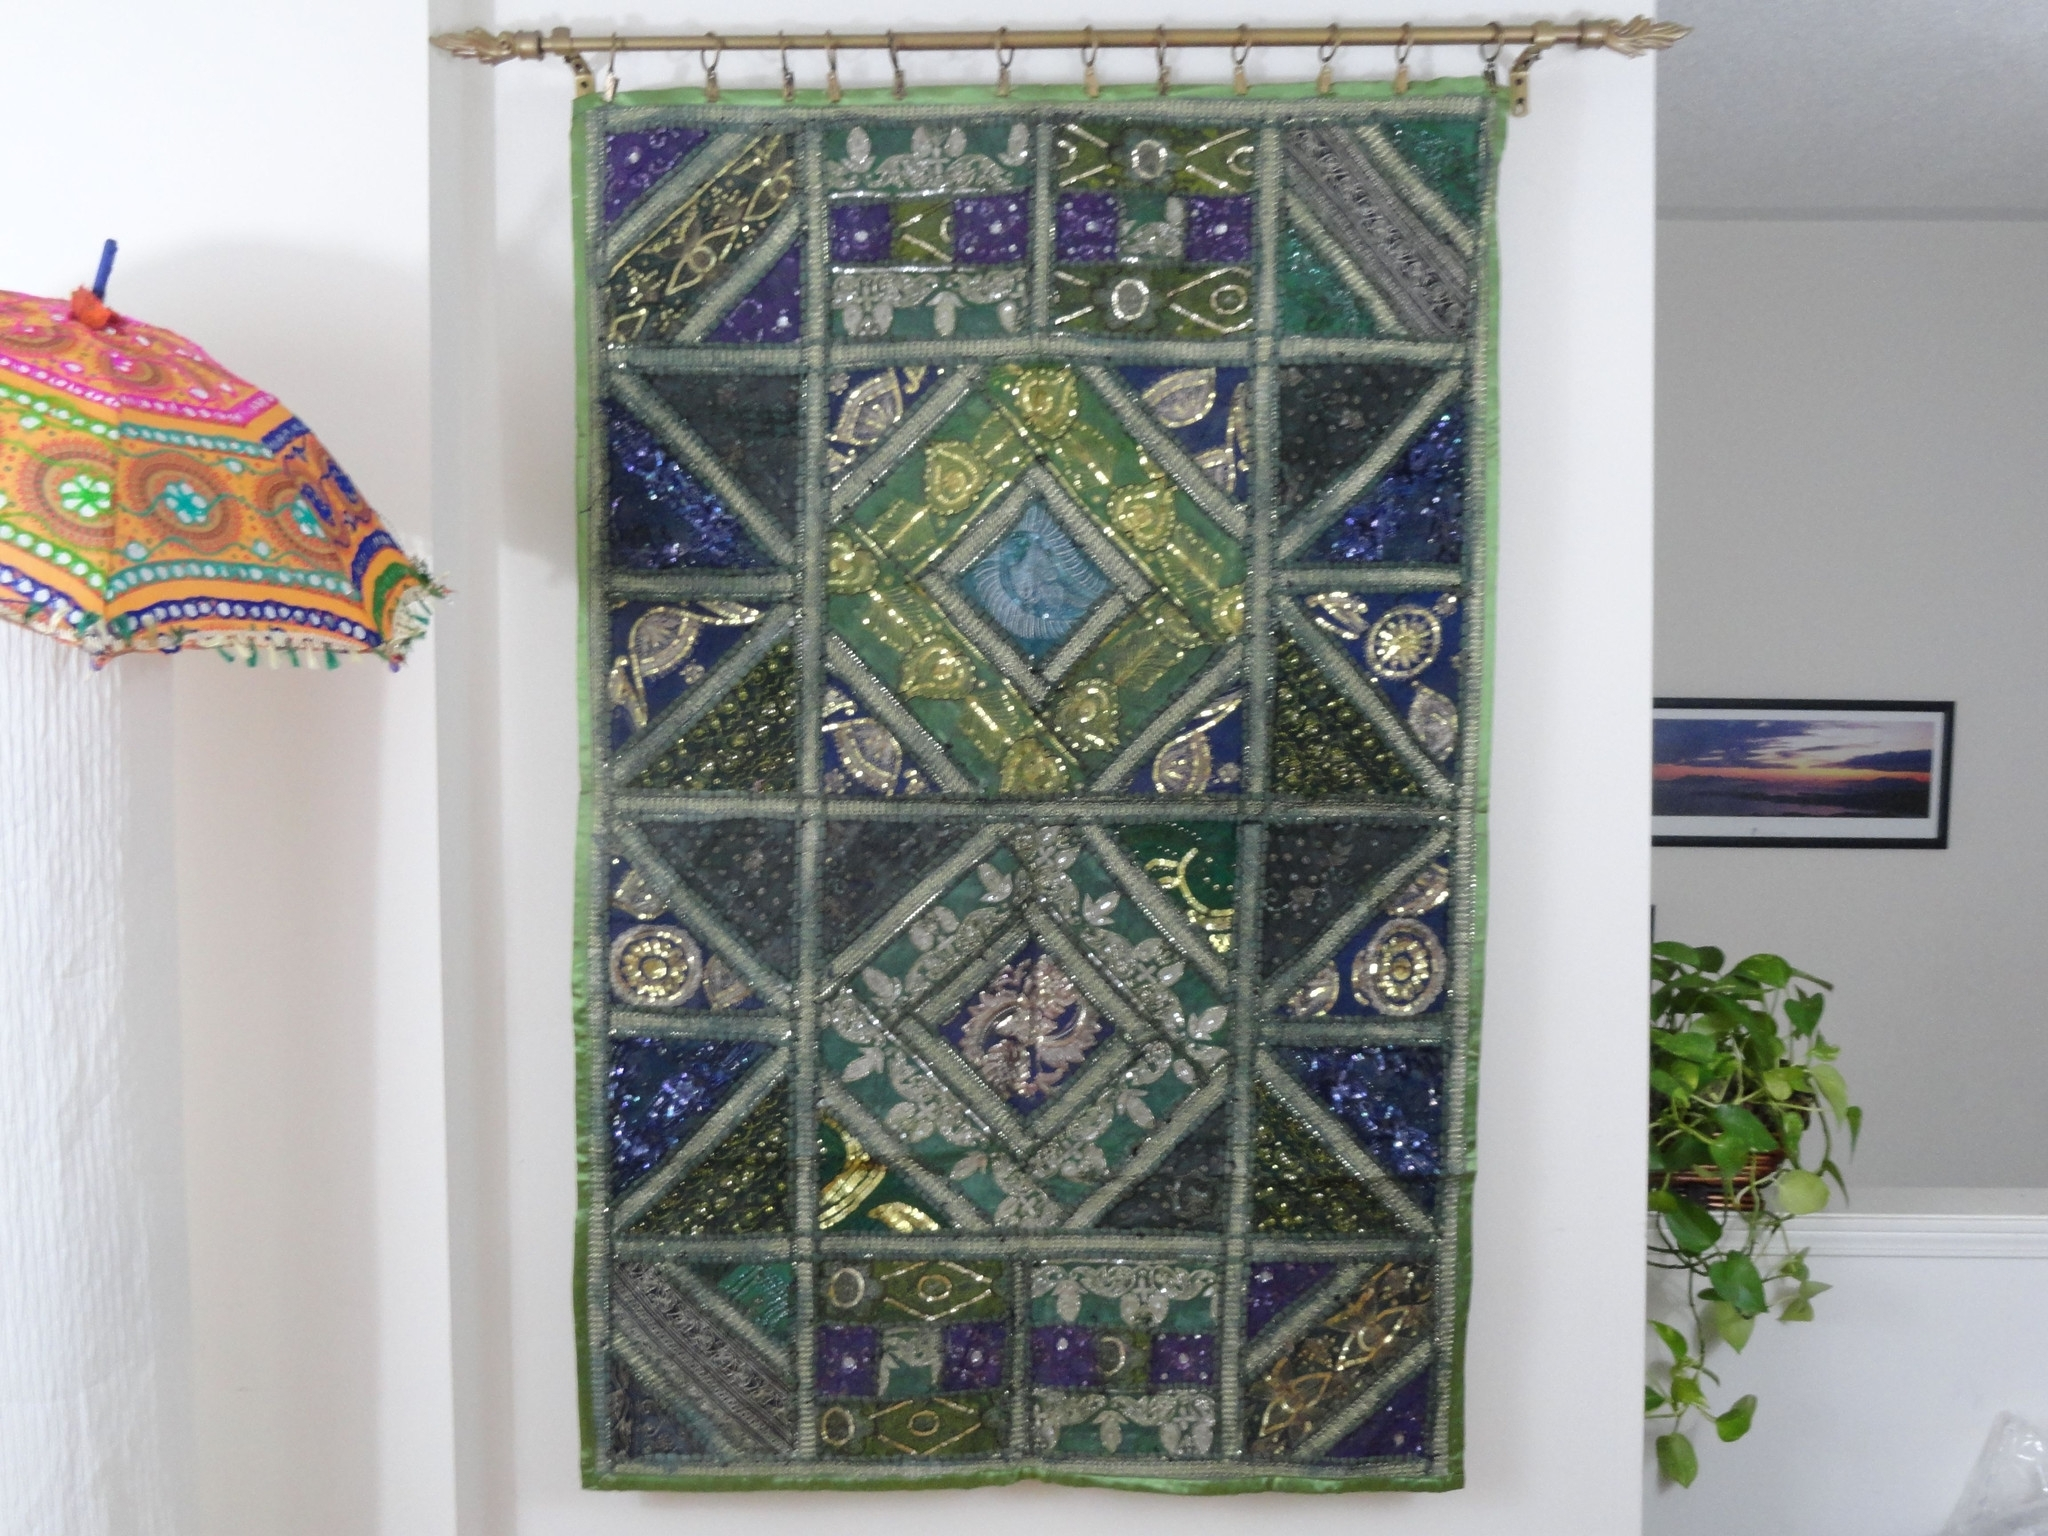 Decorating: Nursery Design With Biege Tapestry Wall Hangings And Regarding Most Popular Purple Fabric Wall Art (View 1 of 15)